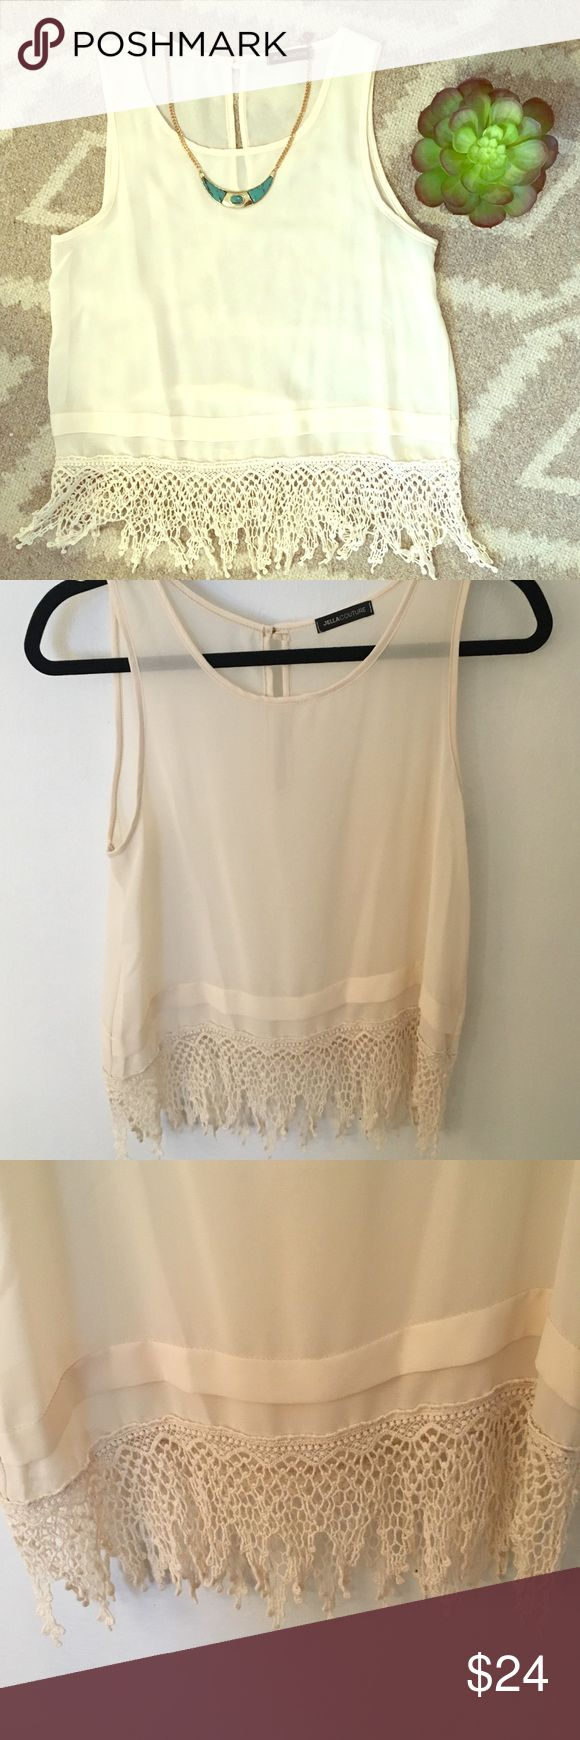 UO Sheer Crochet Top This fun sheer top would be perfect for date night, casual/cute day wear, or even a night out! Features a super fun and unique hemline with crochet details. Pair this with a cami, bralette or bandeau and you're ready to go! So many ways to dress this up or down. Can fit a S or M. Urban Outfitters Tops